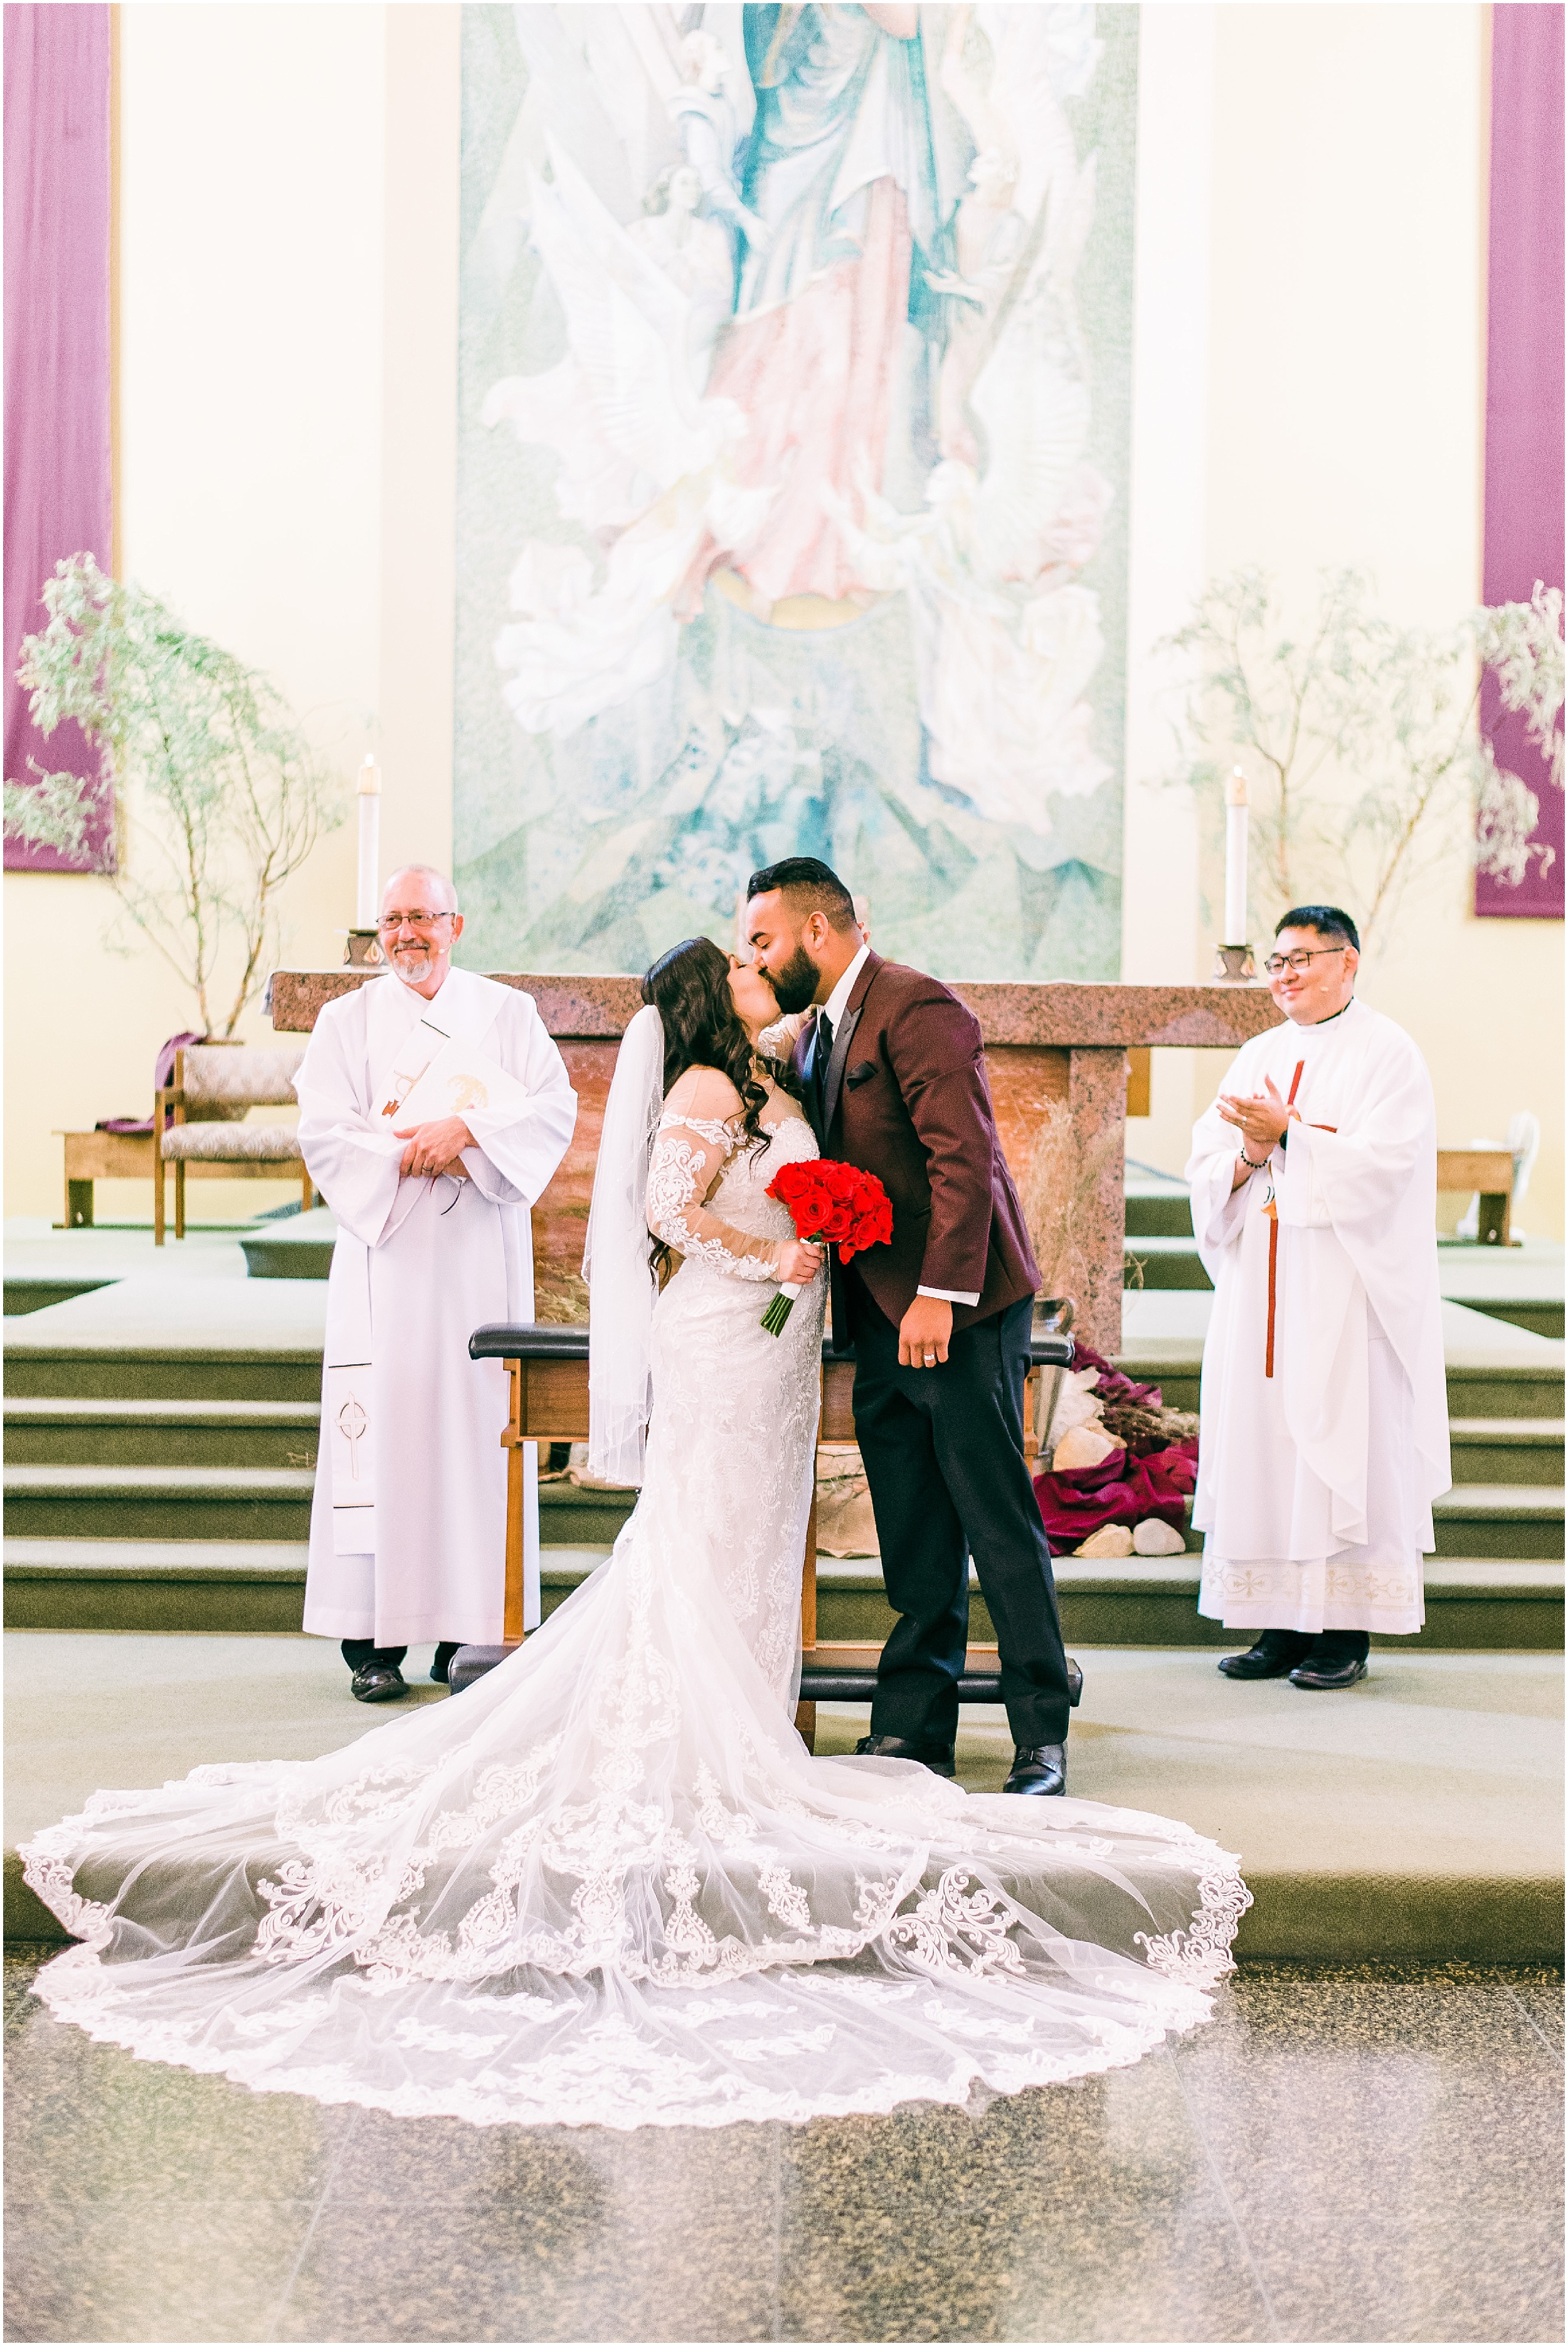 Ventura-California-and-Tallahassee-Florida-Wedding-Photographer-Crystal-and-Daniel-Wedding-at-Westlake-California_0020.jpg